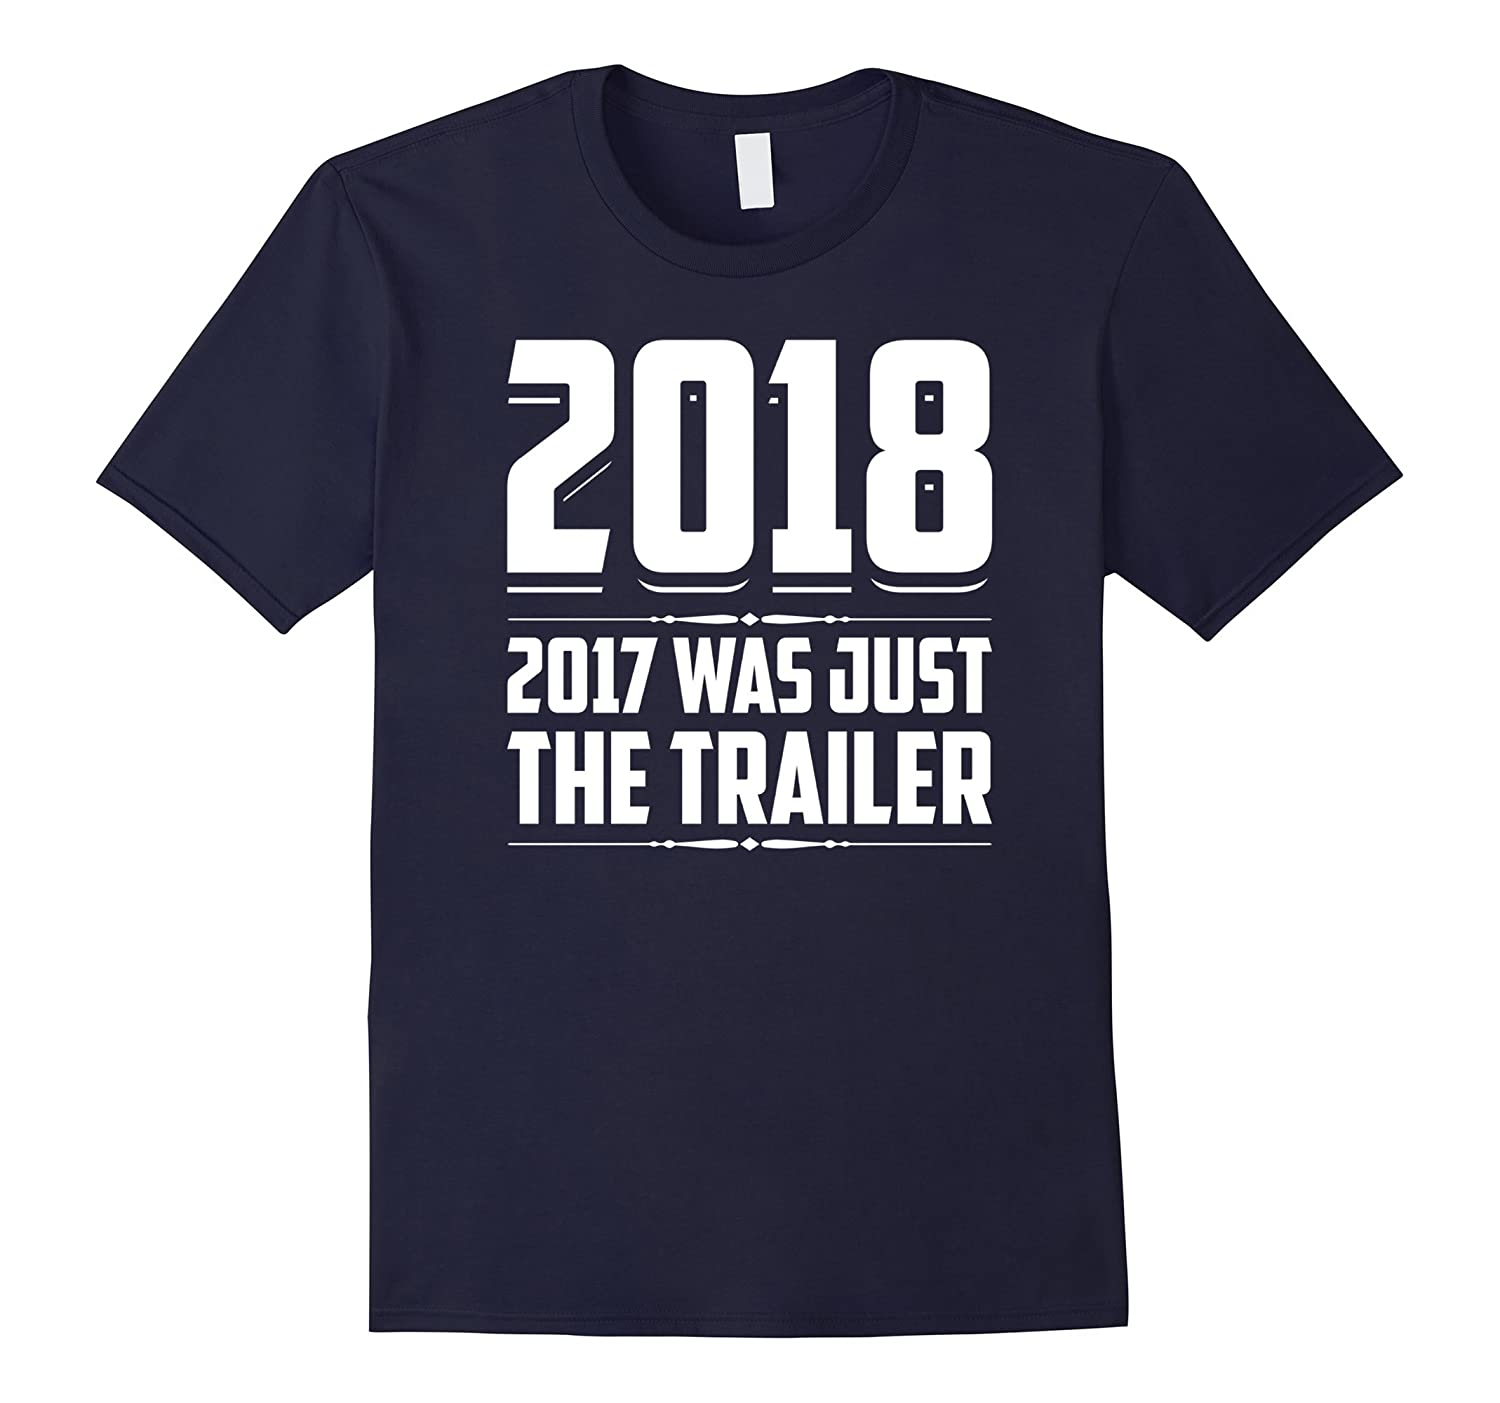 2018. 2017 Was Just The Trailer Funny Ironic Holiday T-Shirt-ANZ